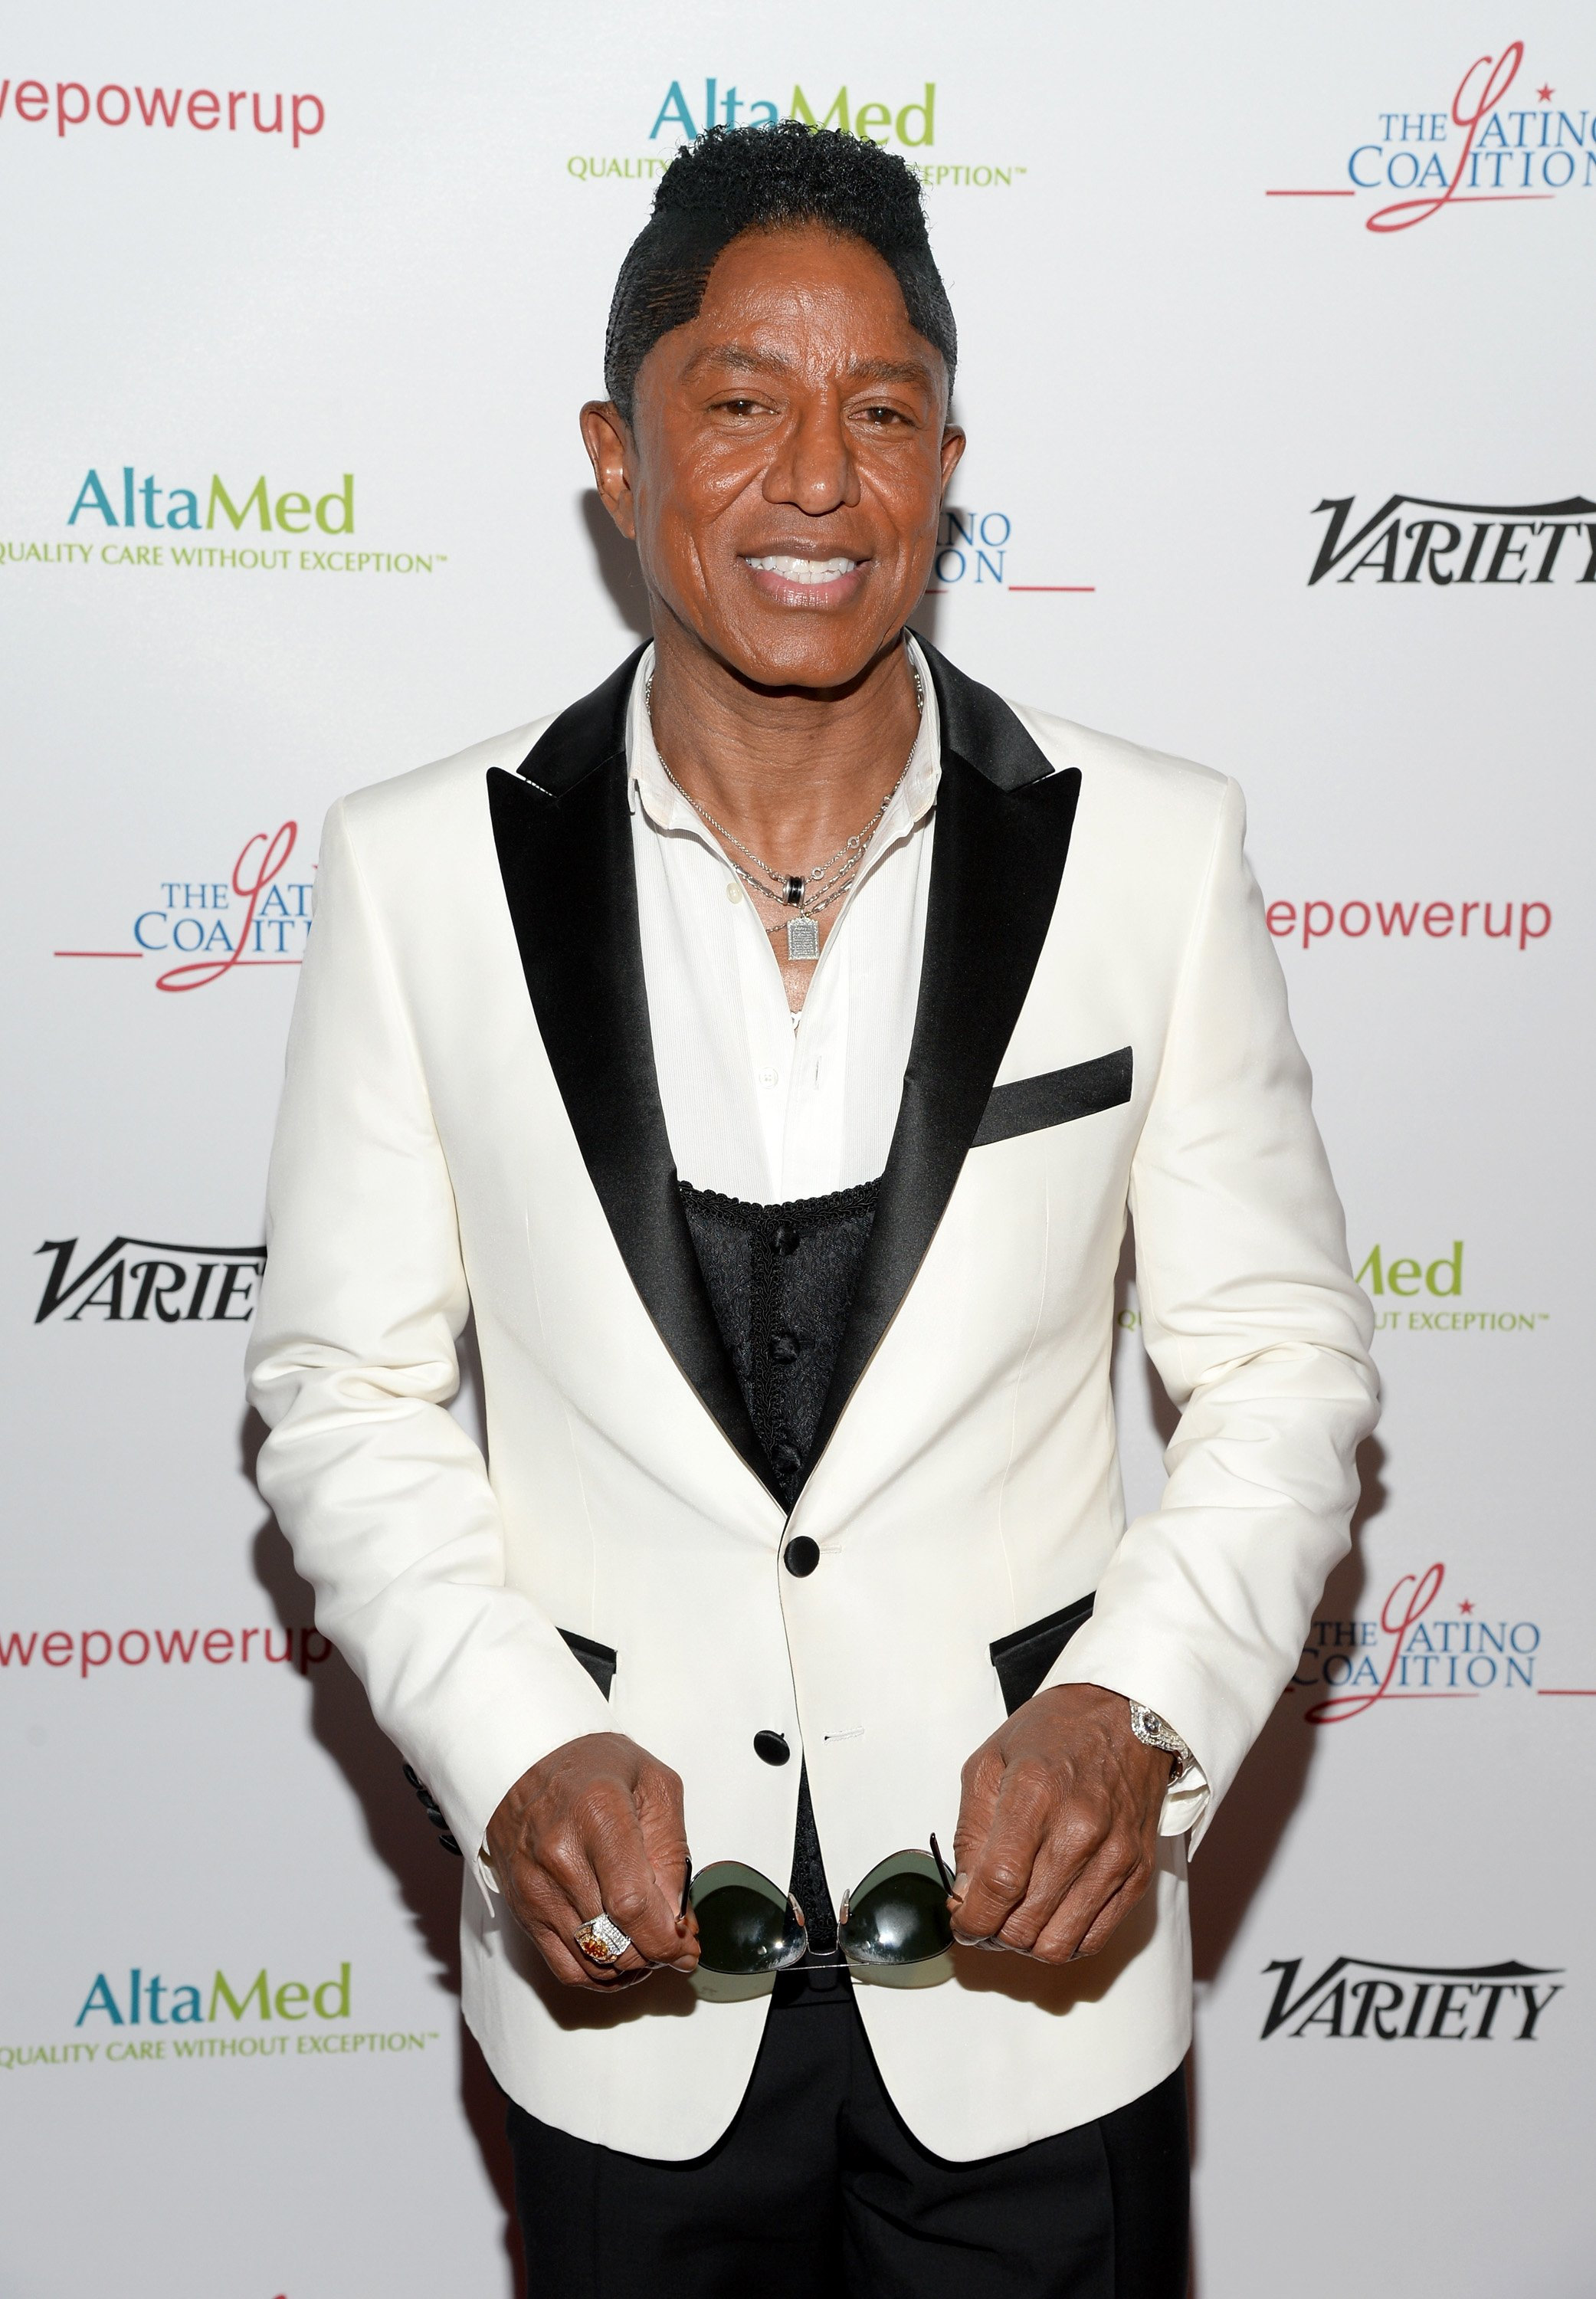 Jermaine Jackson attends the AltaMed Power Up, We Are The Future Gala at the Beverly Wilshire Four Seasons Hotel on May 12, 2016, in Beverly Hills, California. | Source: Getty Images.